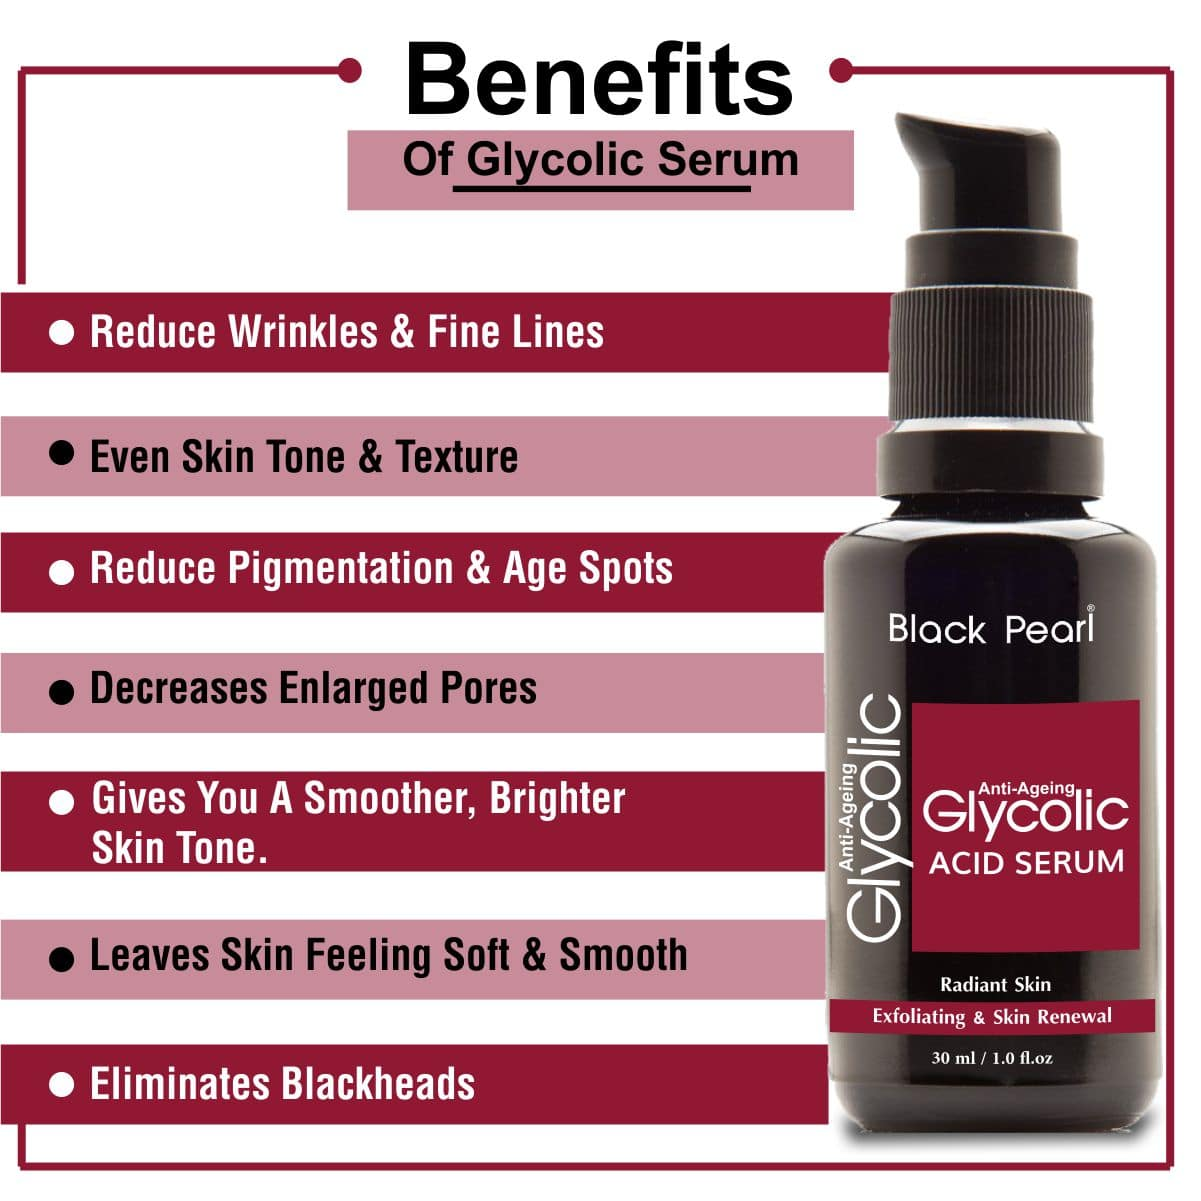 Best Private Label and Third Party Cosmetic Manufacturer Glycolic Acid Serum Benefits